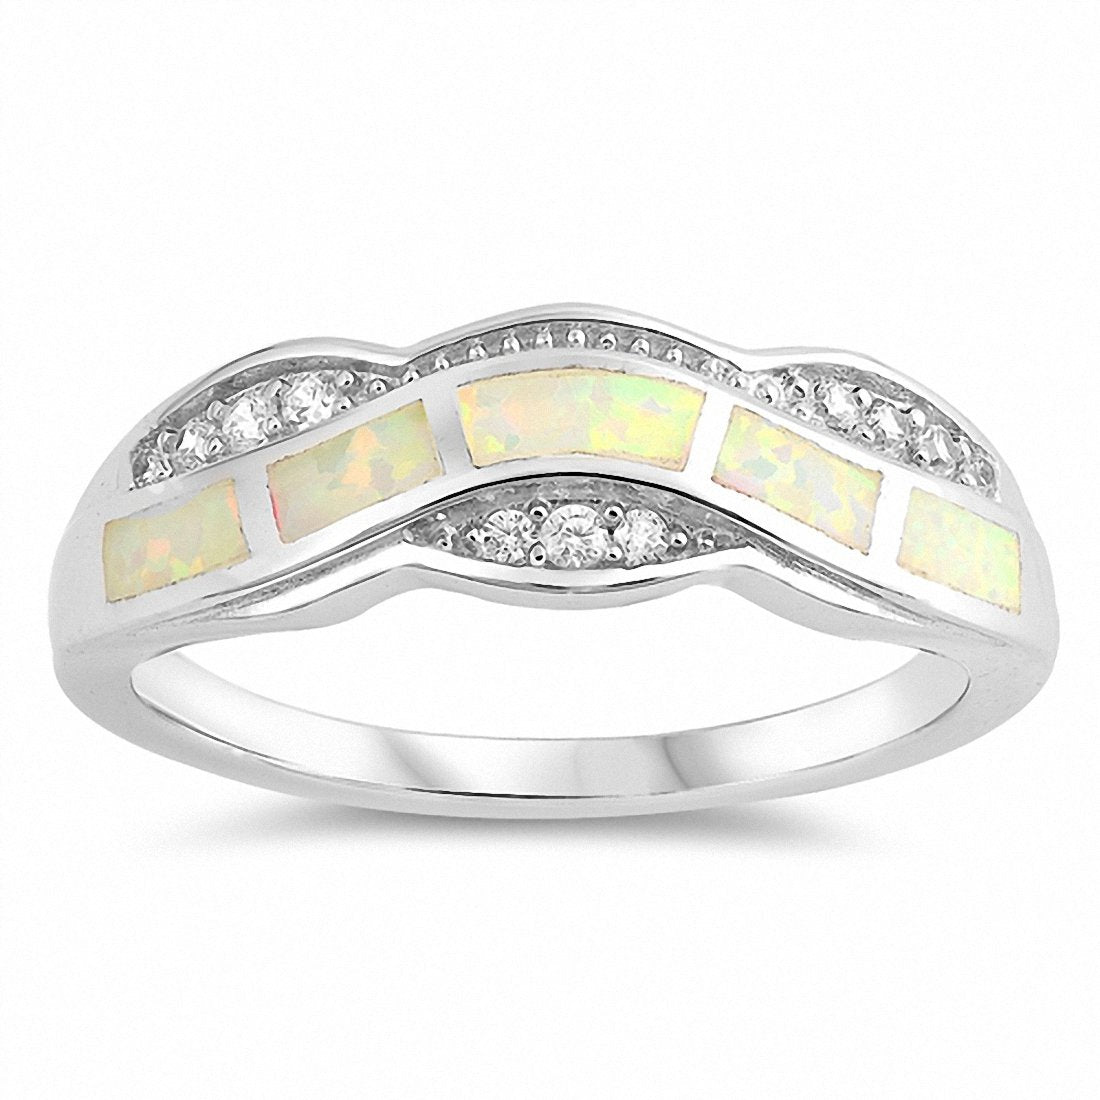 Fashion Ring Created Opal Round Cubic Zirconia 925 Sterling Silver Choose Color